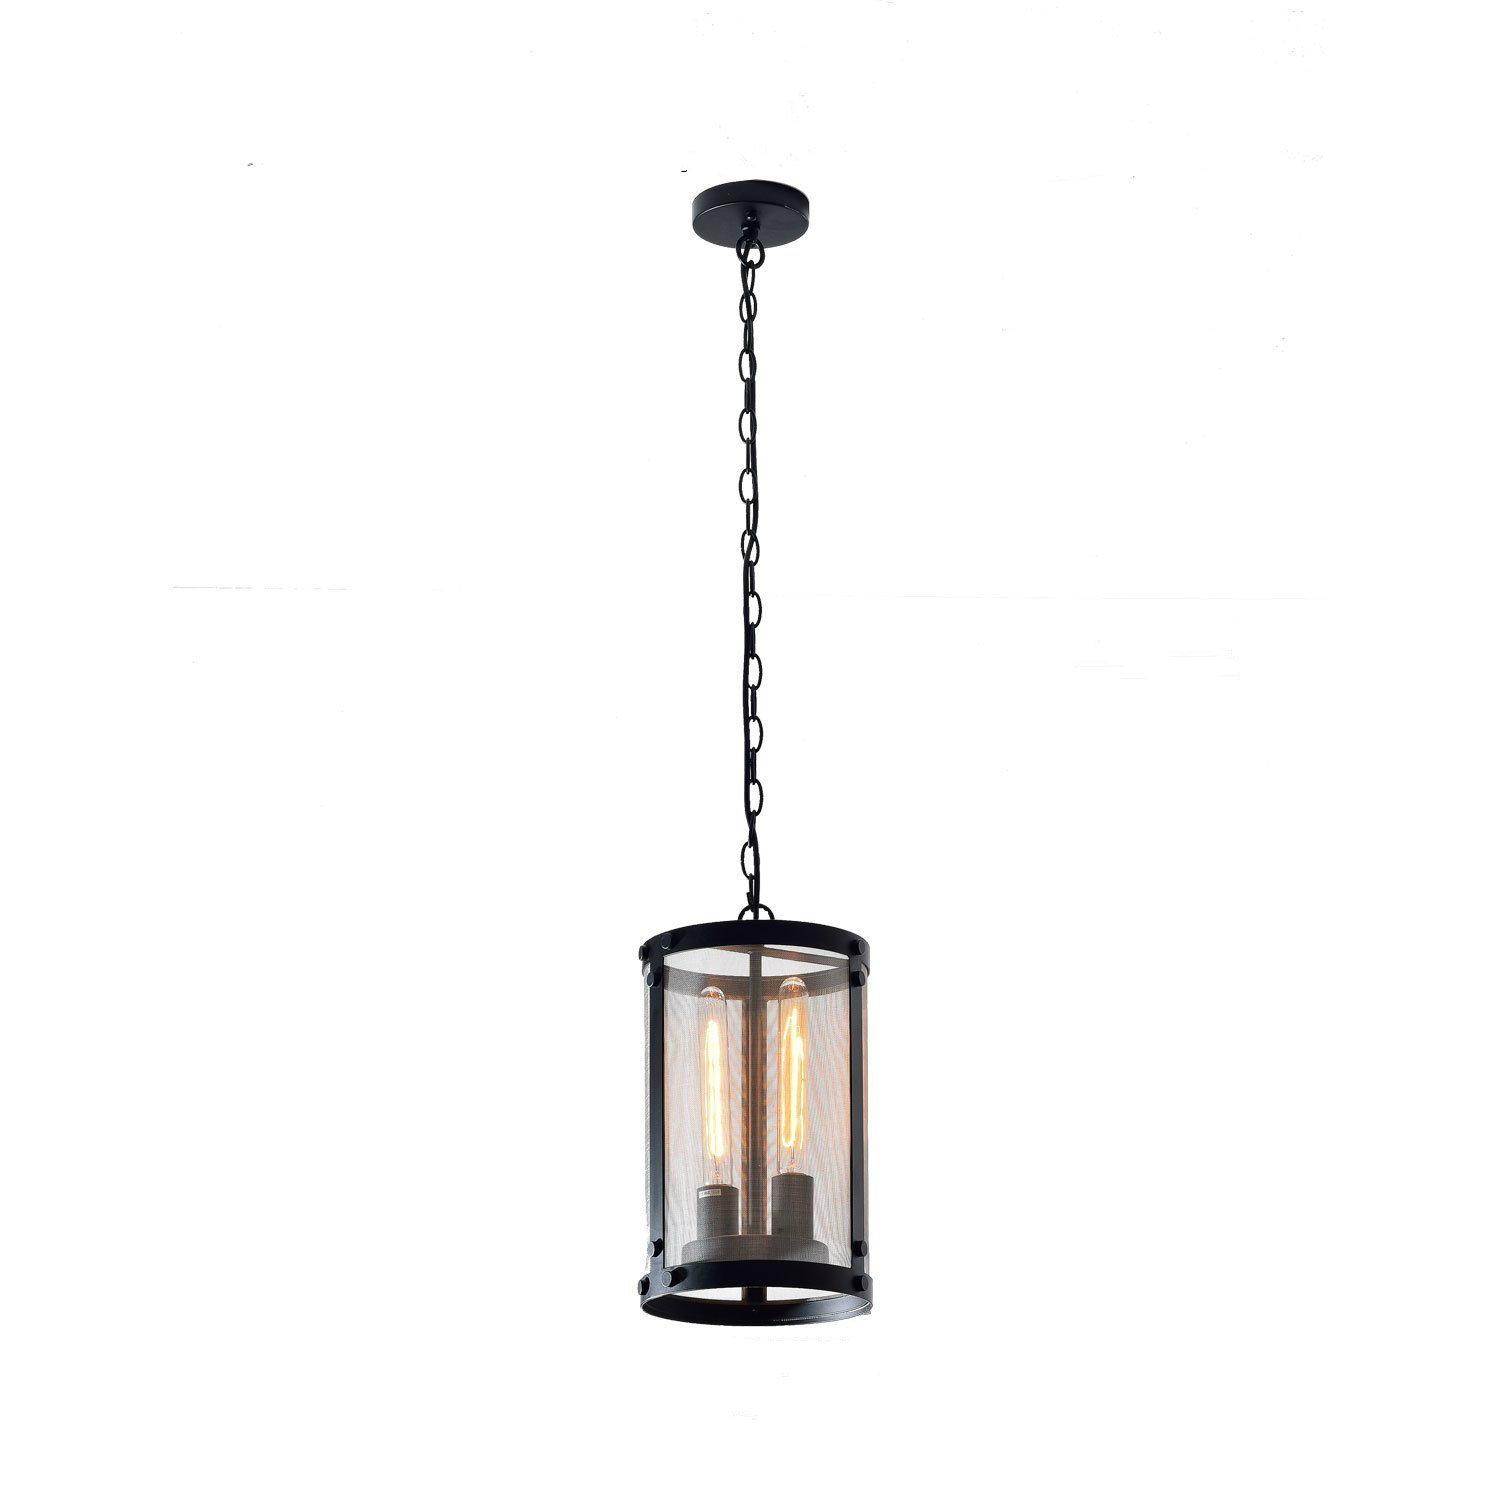 Vintage Black Industrial Pendant Light Chandelier Lighting Chandeliers Ceiling Fixtures